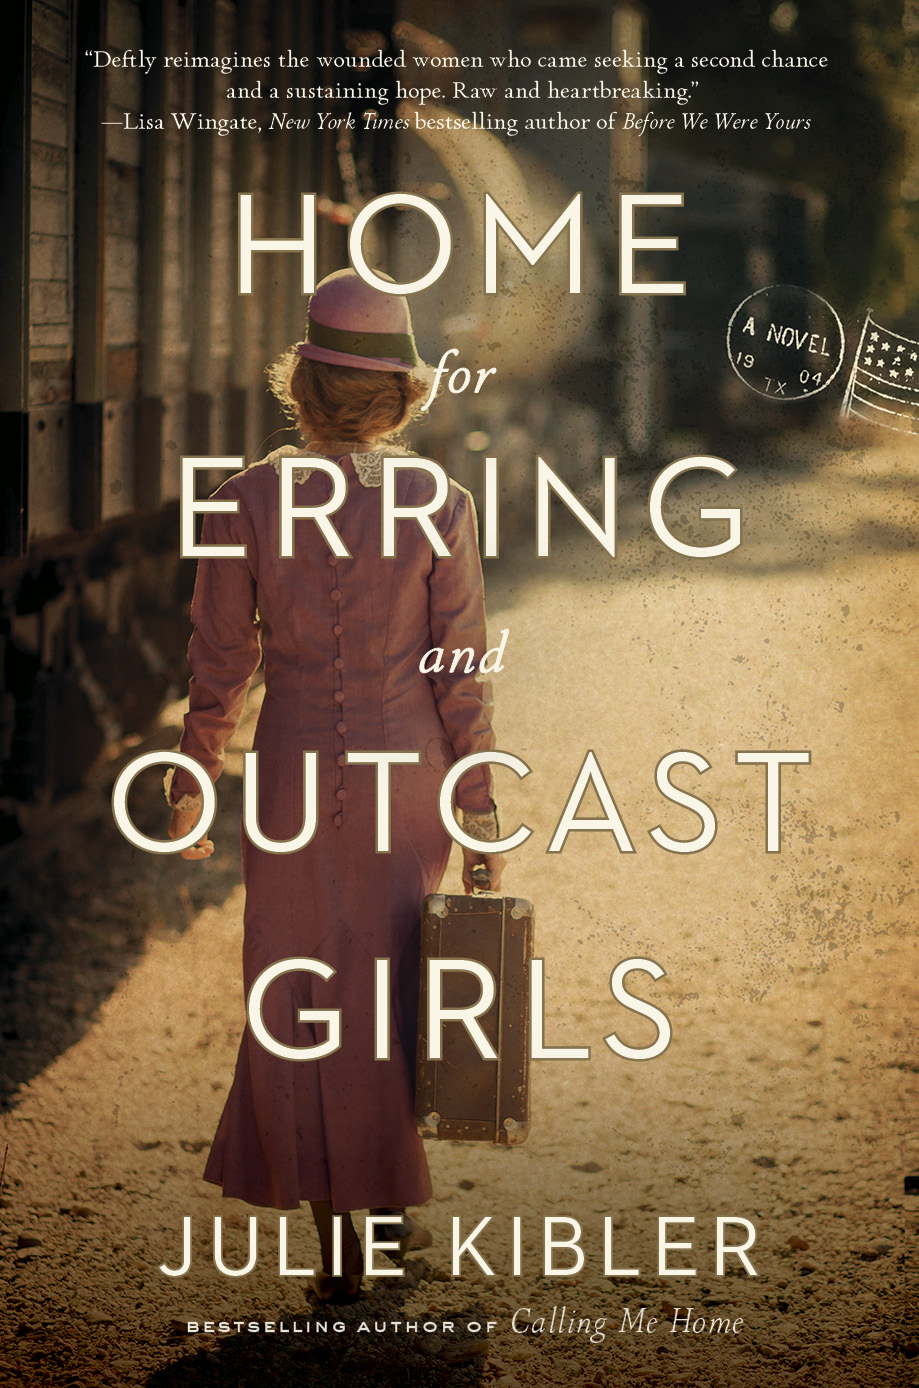 Home for Erring and Outcast Girls  by Julie Kibler  Crown —- July 30, 2019